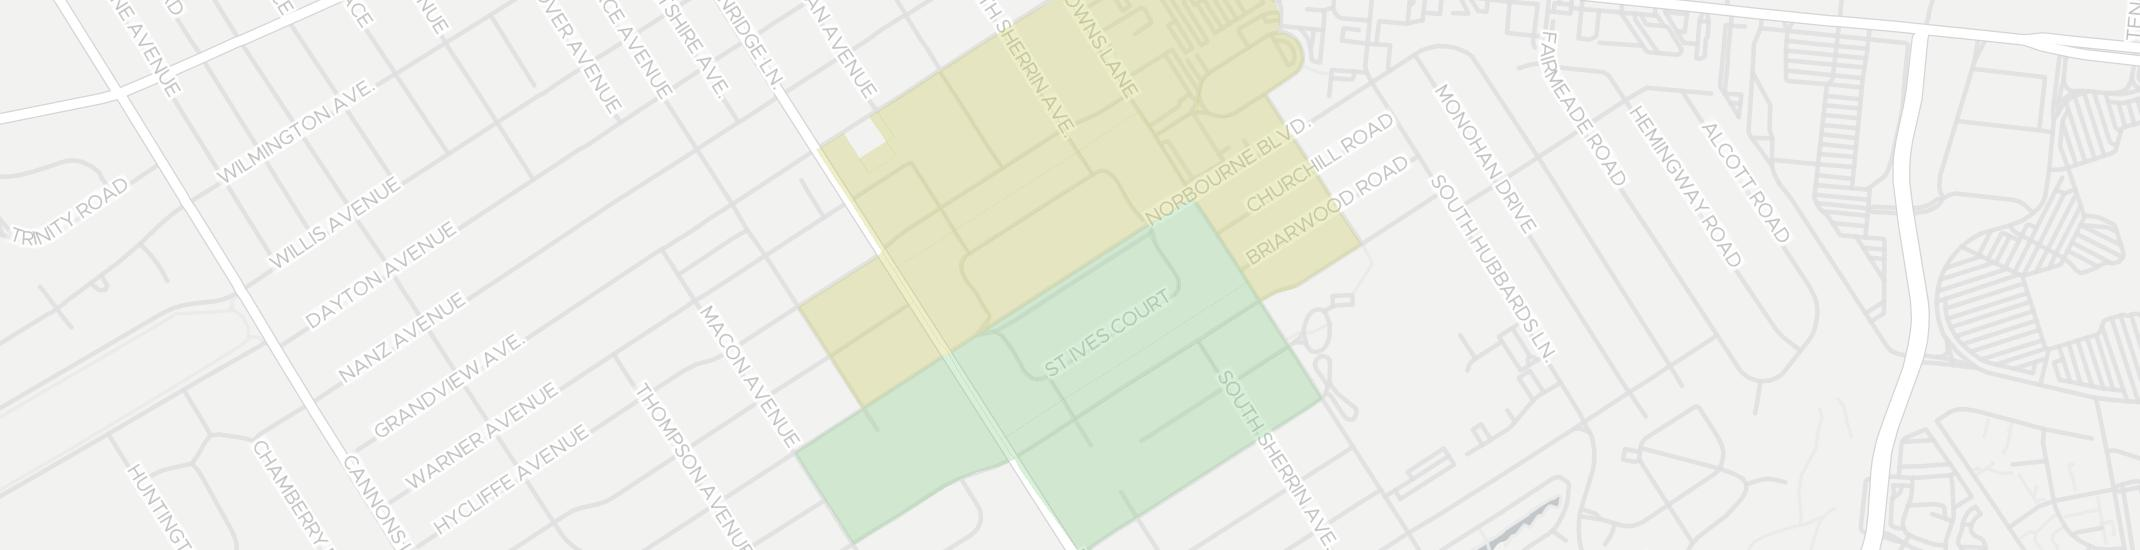 Norbourne Estates Internet Competition Map. Click for interactive map.